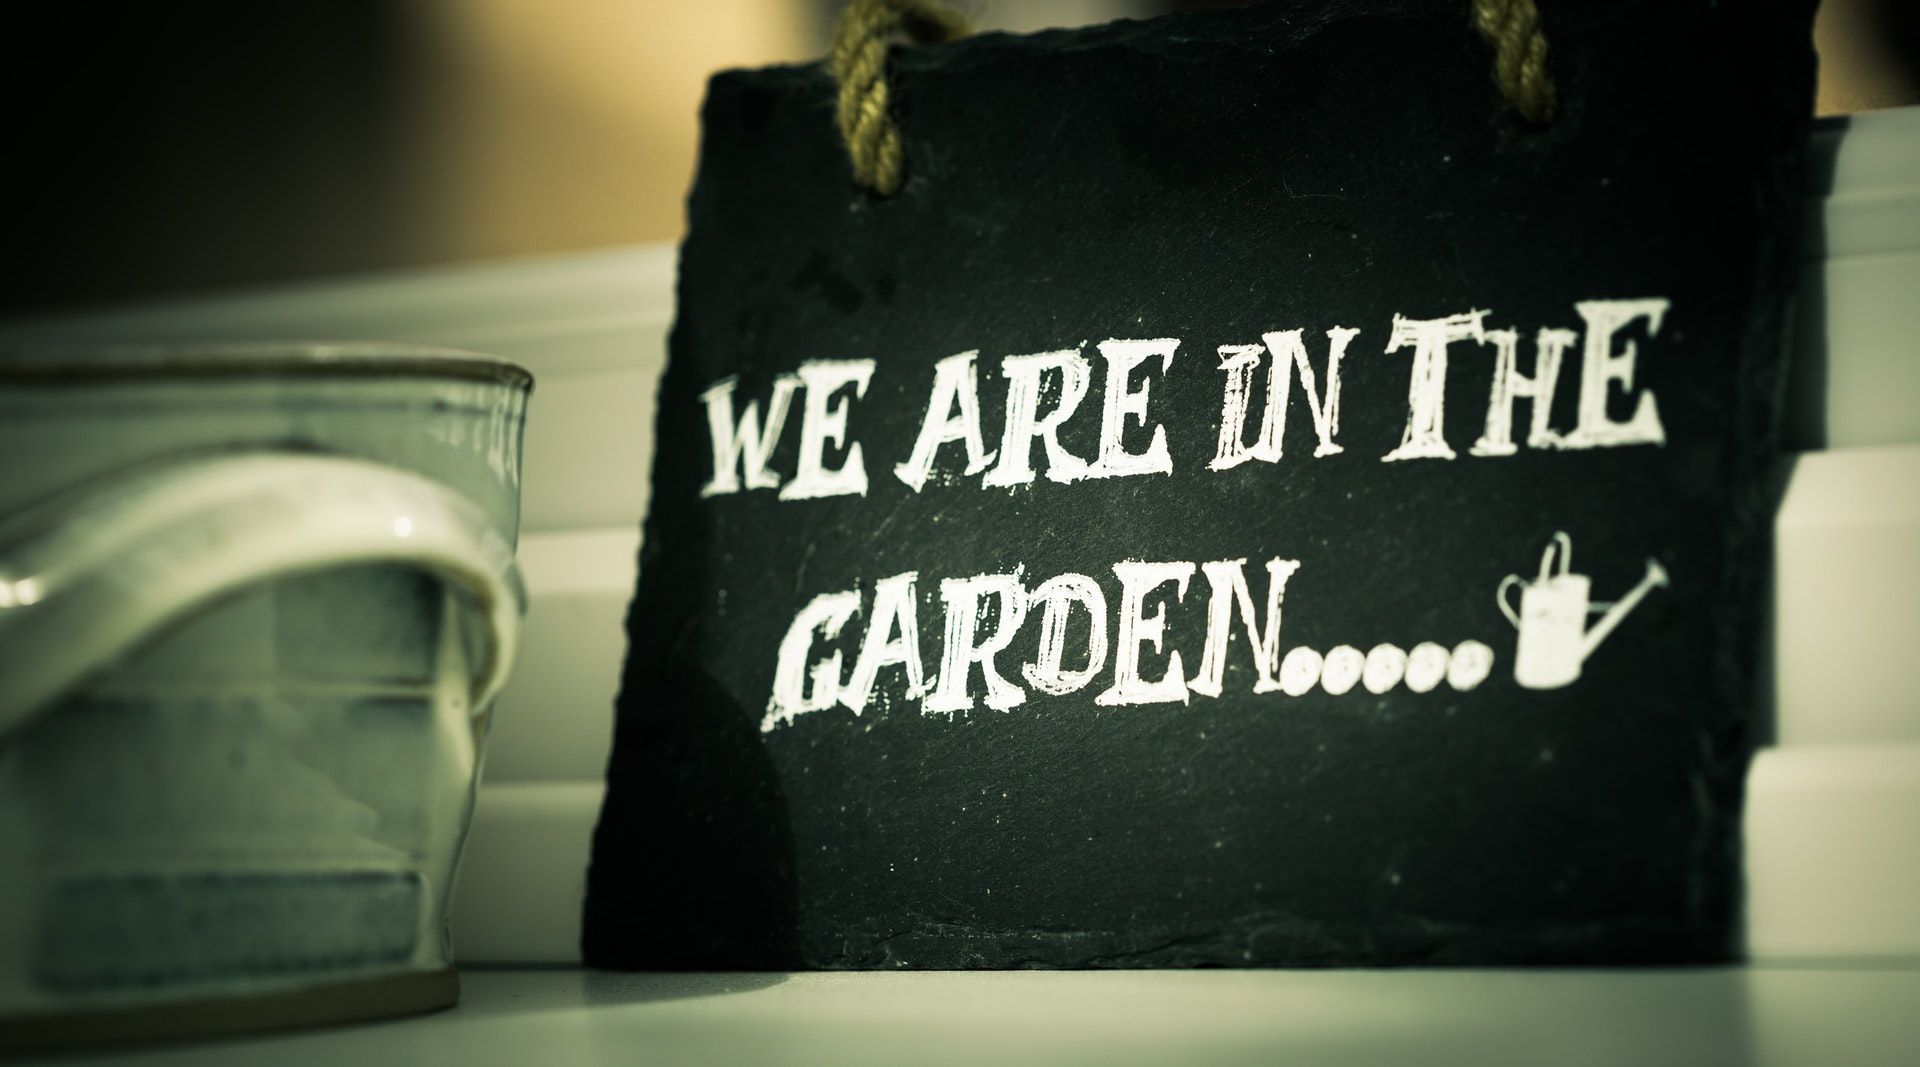 Perth's-best gardening-and-landscaping-supplies